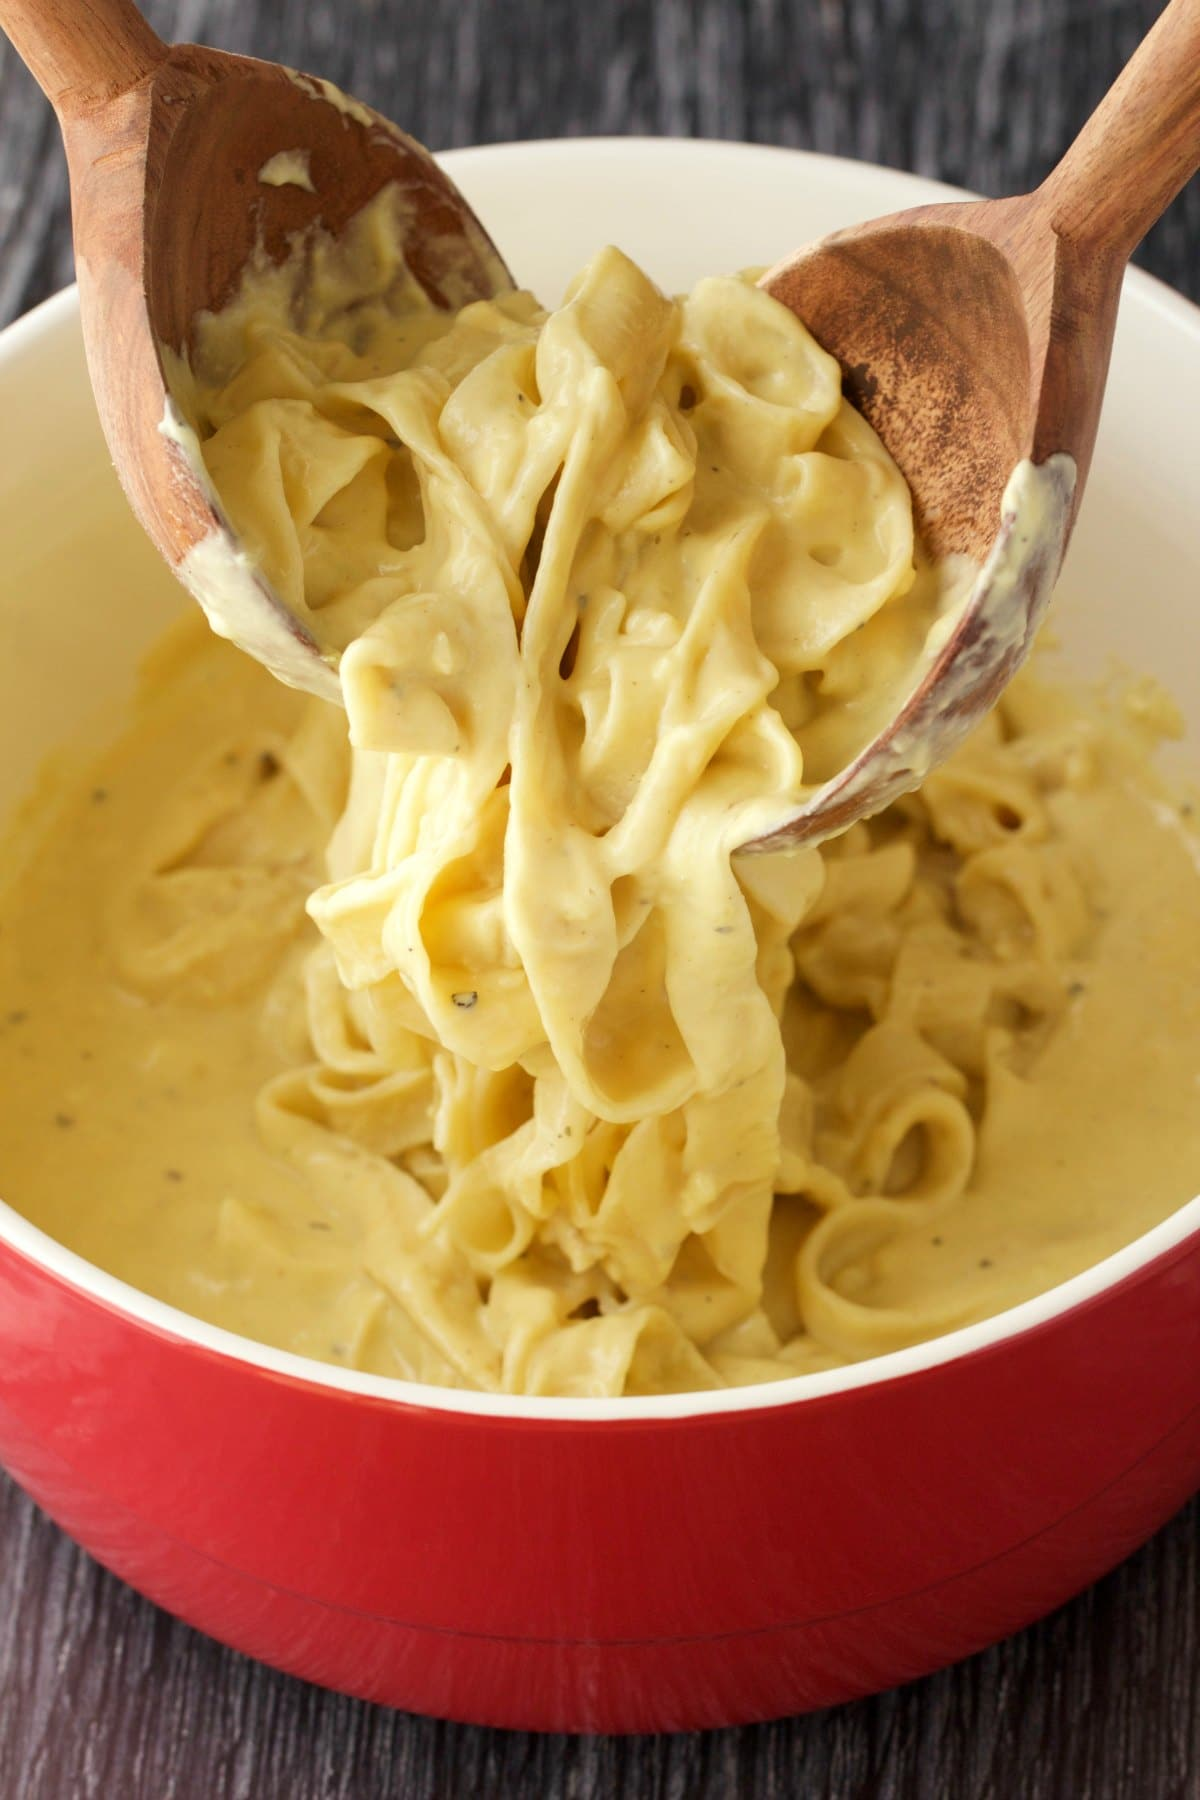 Vegan alfredo with fettucine in a red dish with two wooden serving spoons.